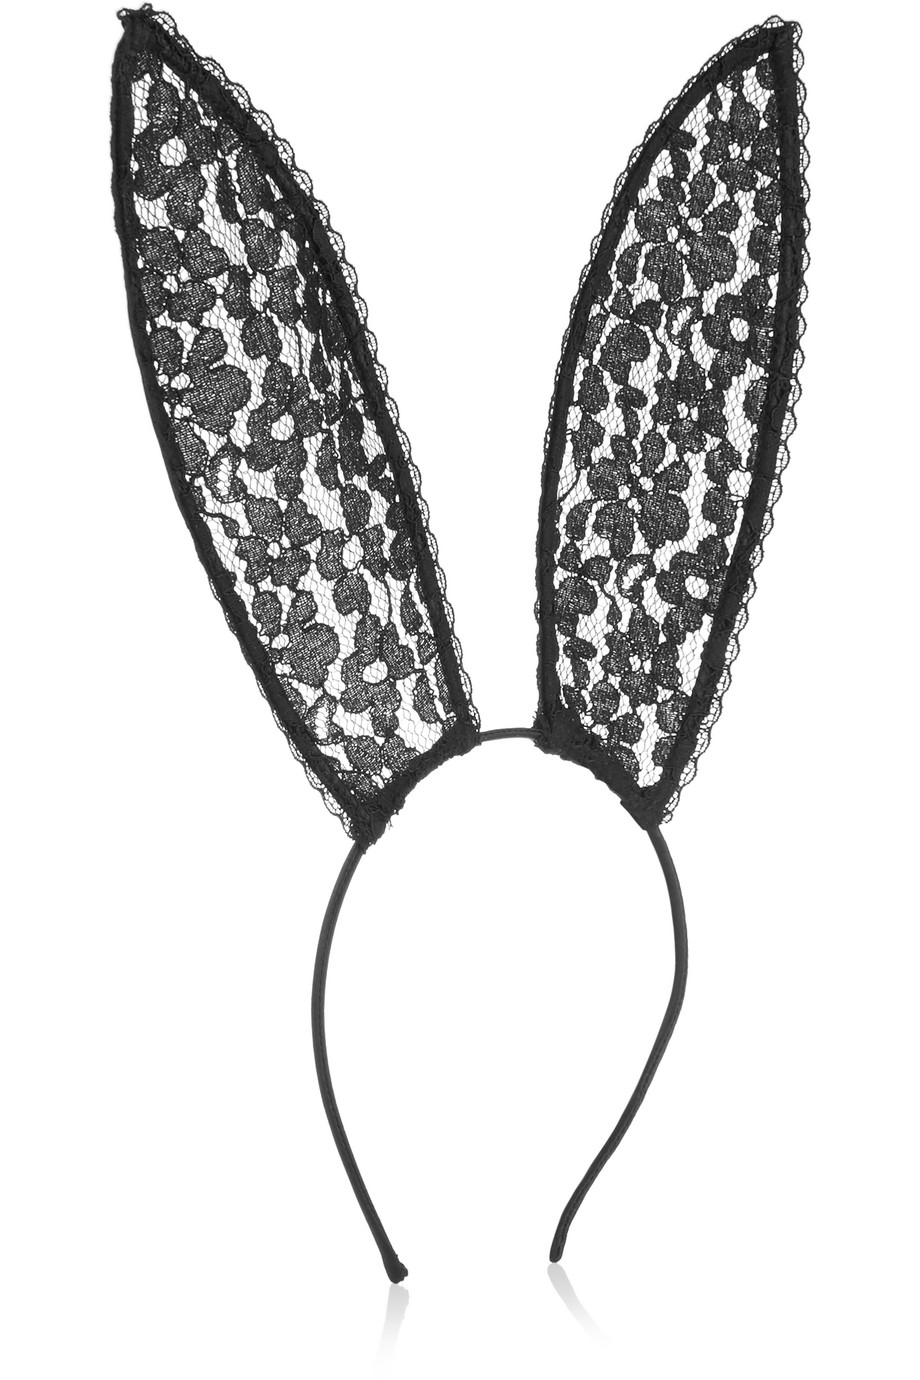 + Playboy Leavers Lace Bunny Ear Headband, Black, Women's, Size: One Size